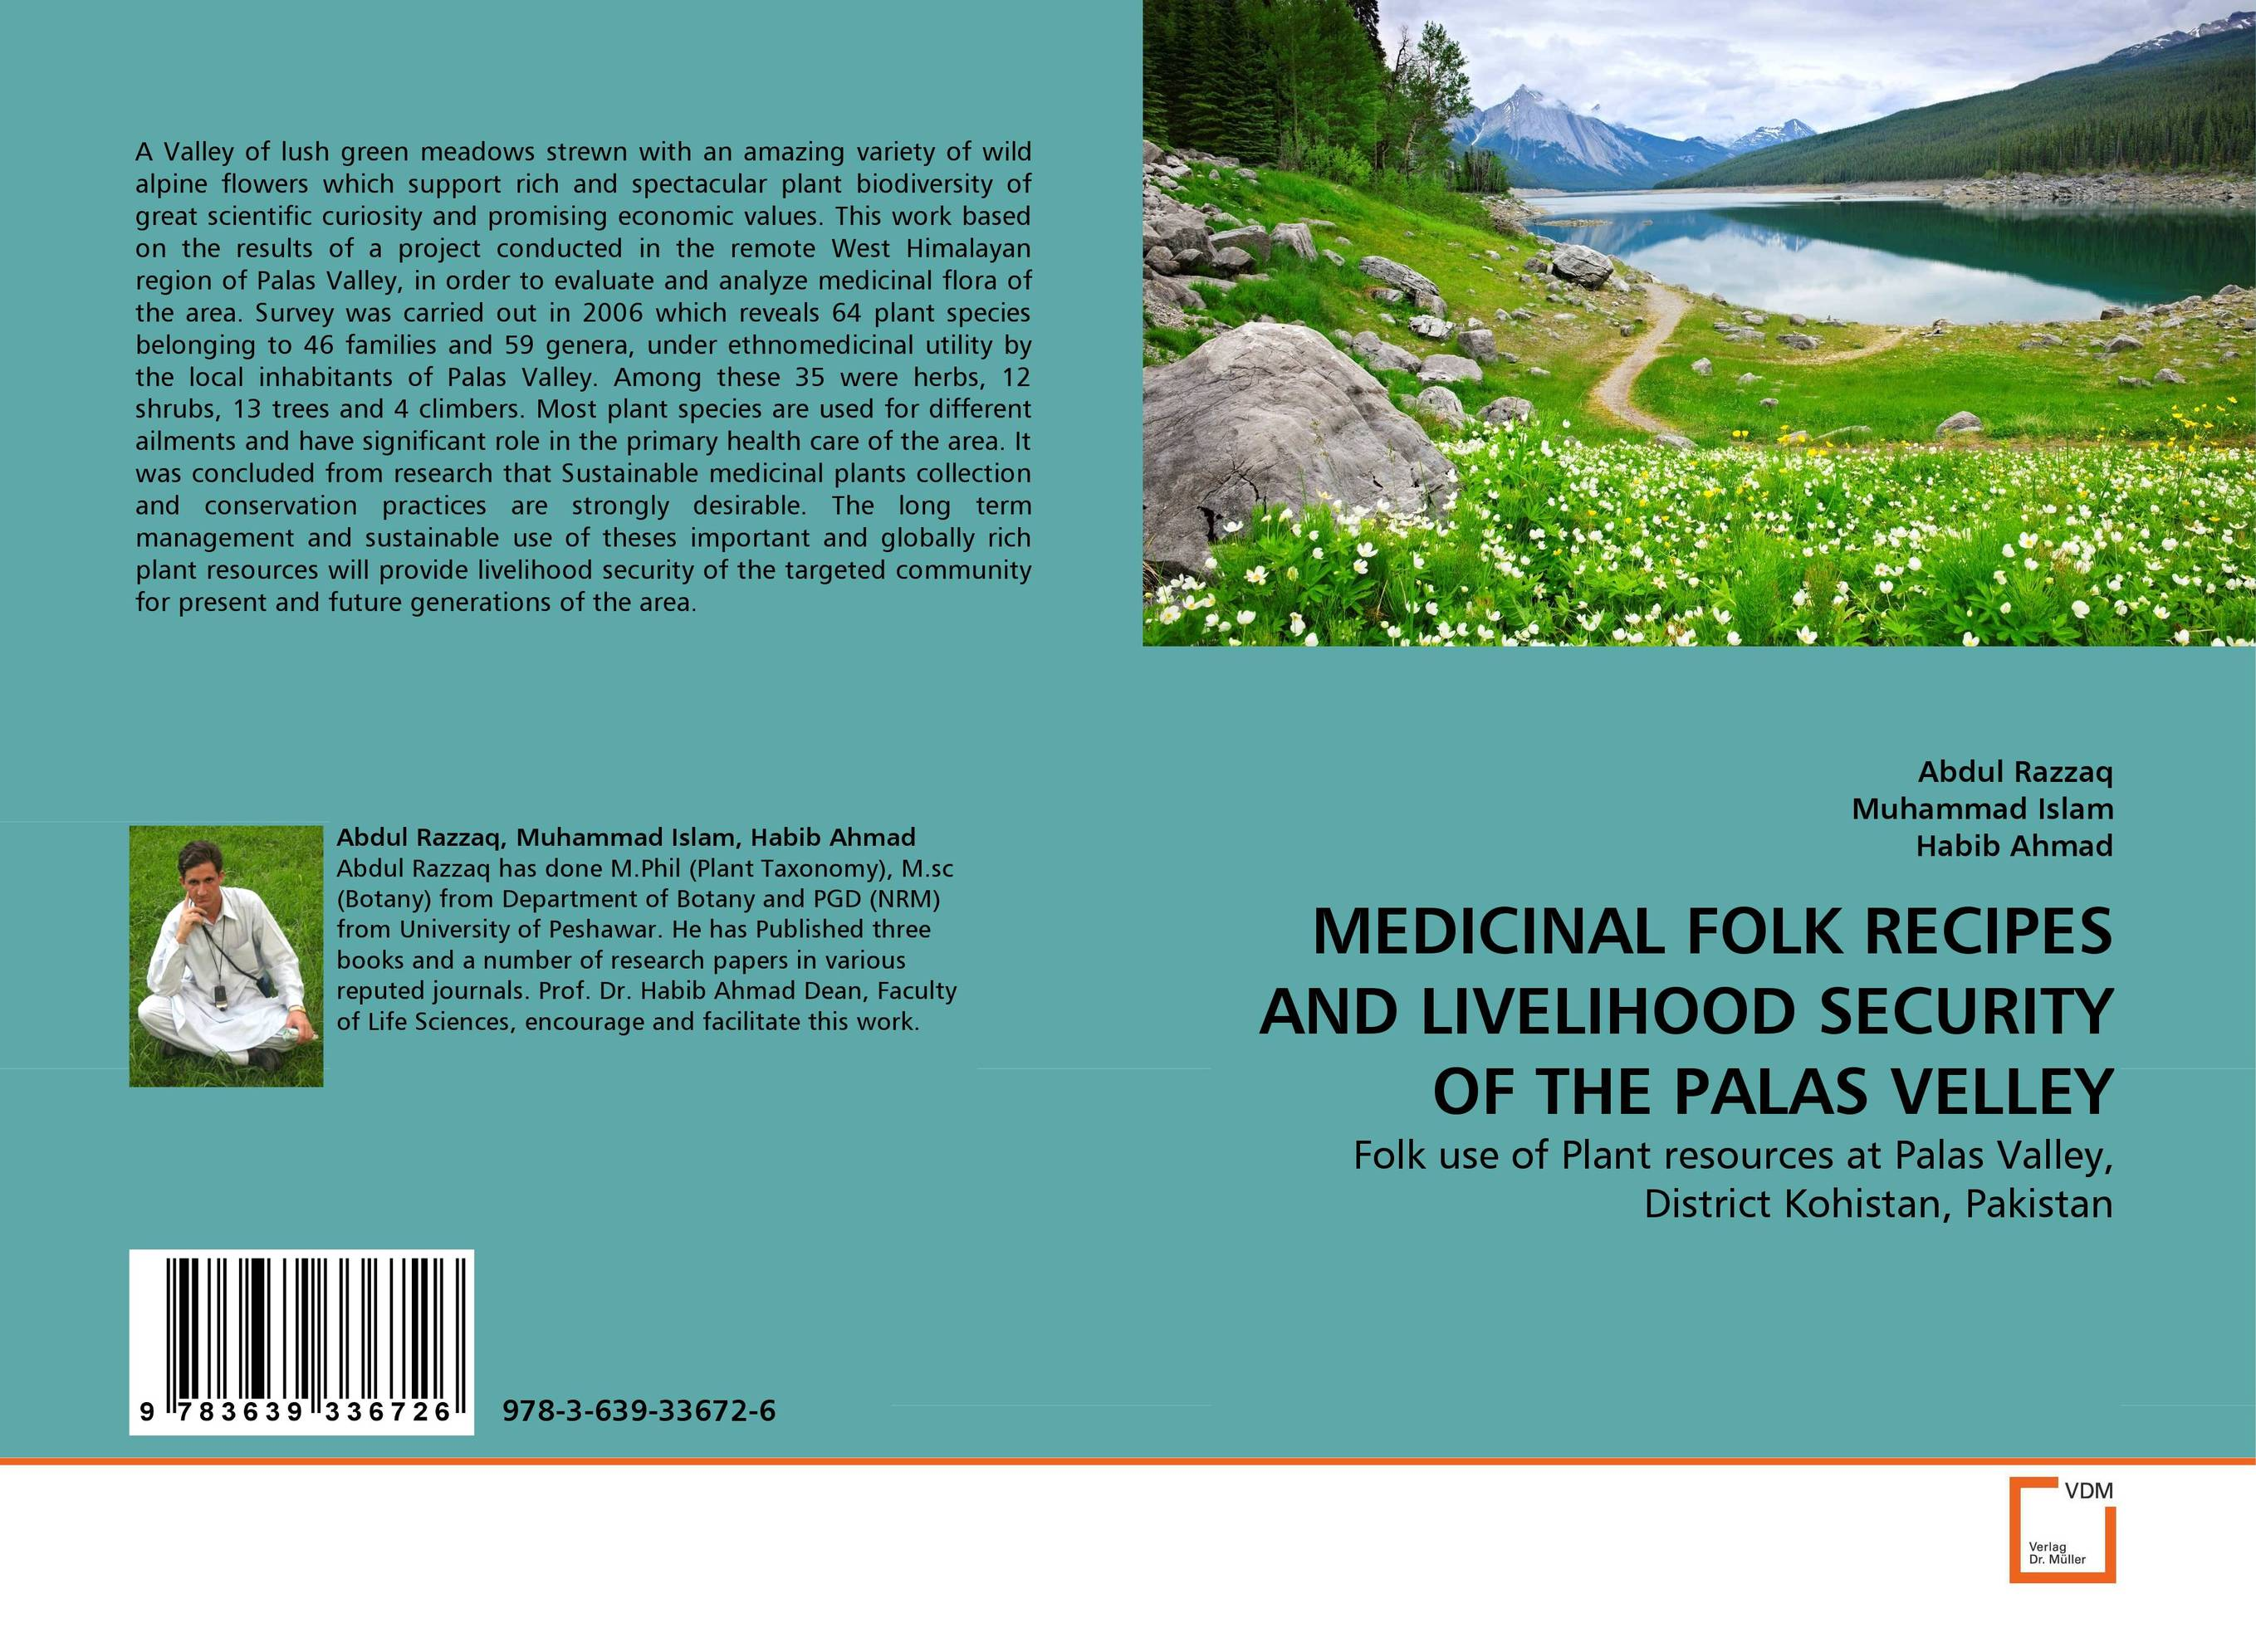 MEDICINAL FOLK RECIPES AND LIVELIHOOD SECURITY OF THE PALAS VELLEY